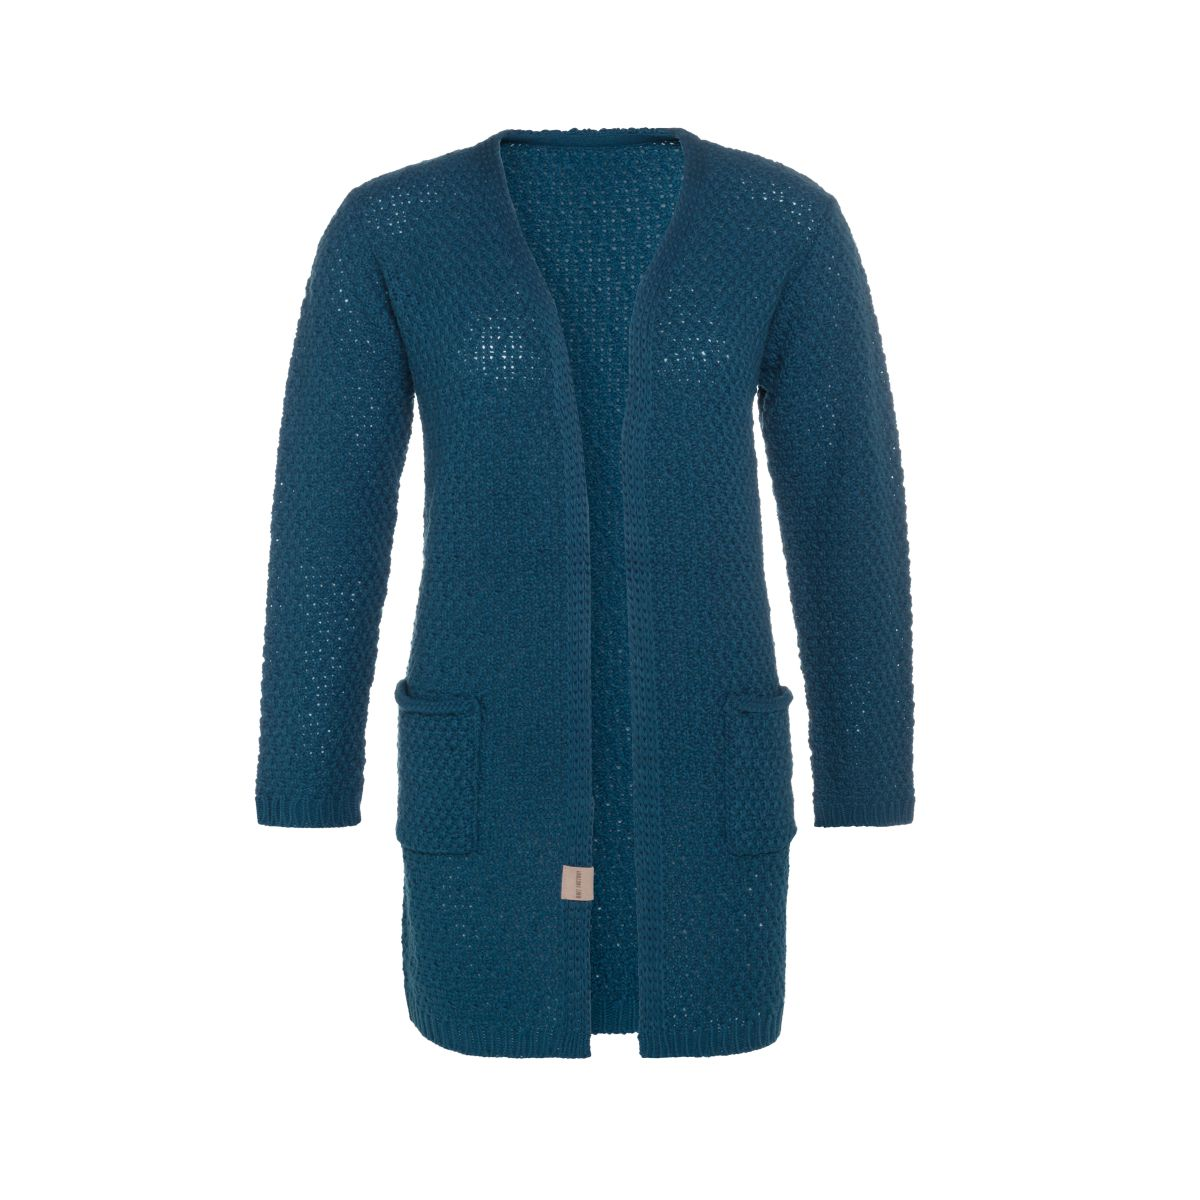 luna knitted cardigan petrol 3638 with side pockets